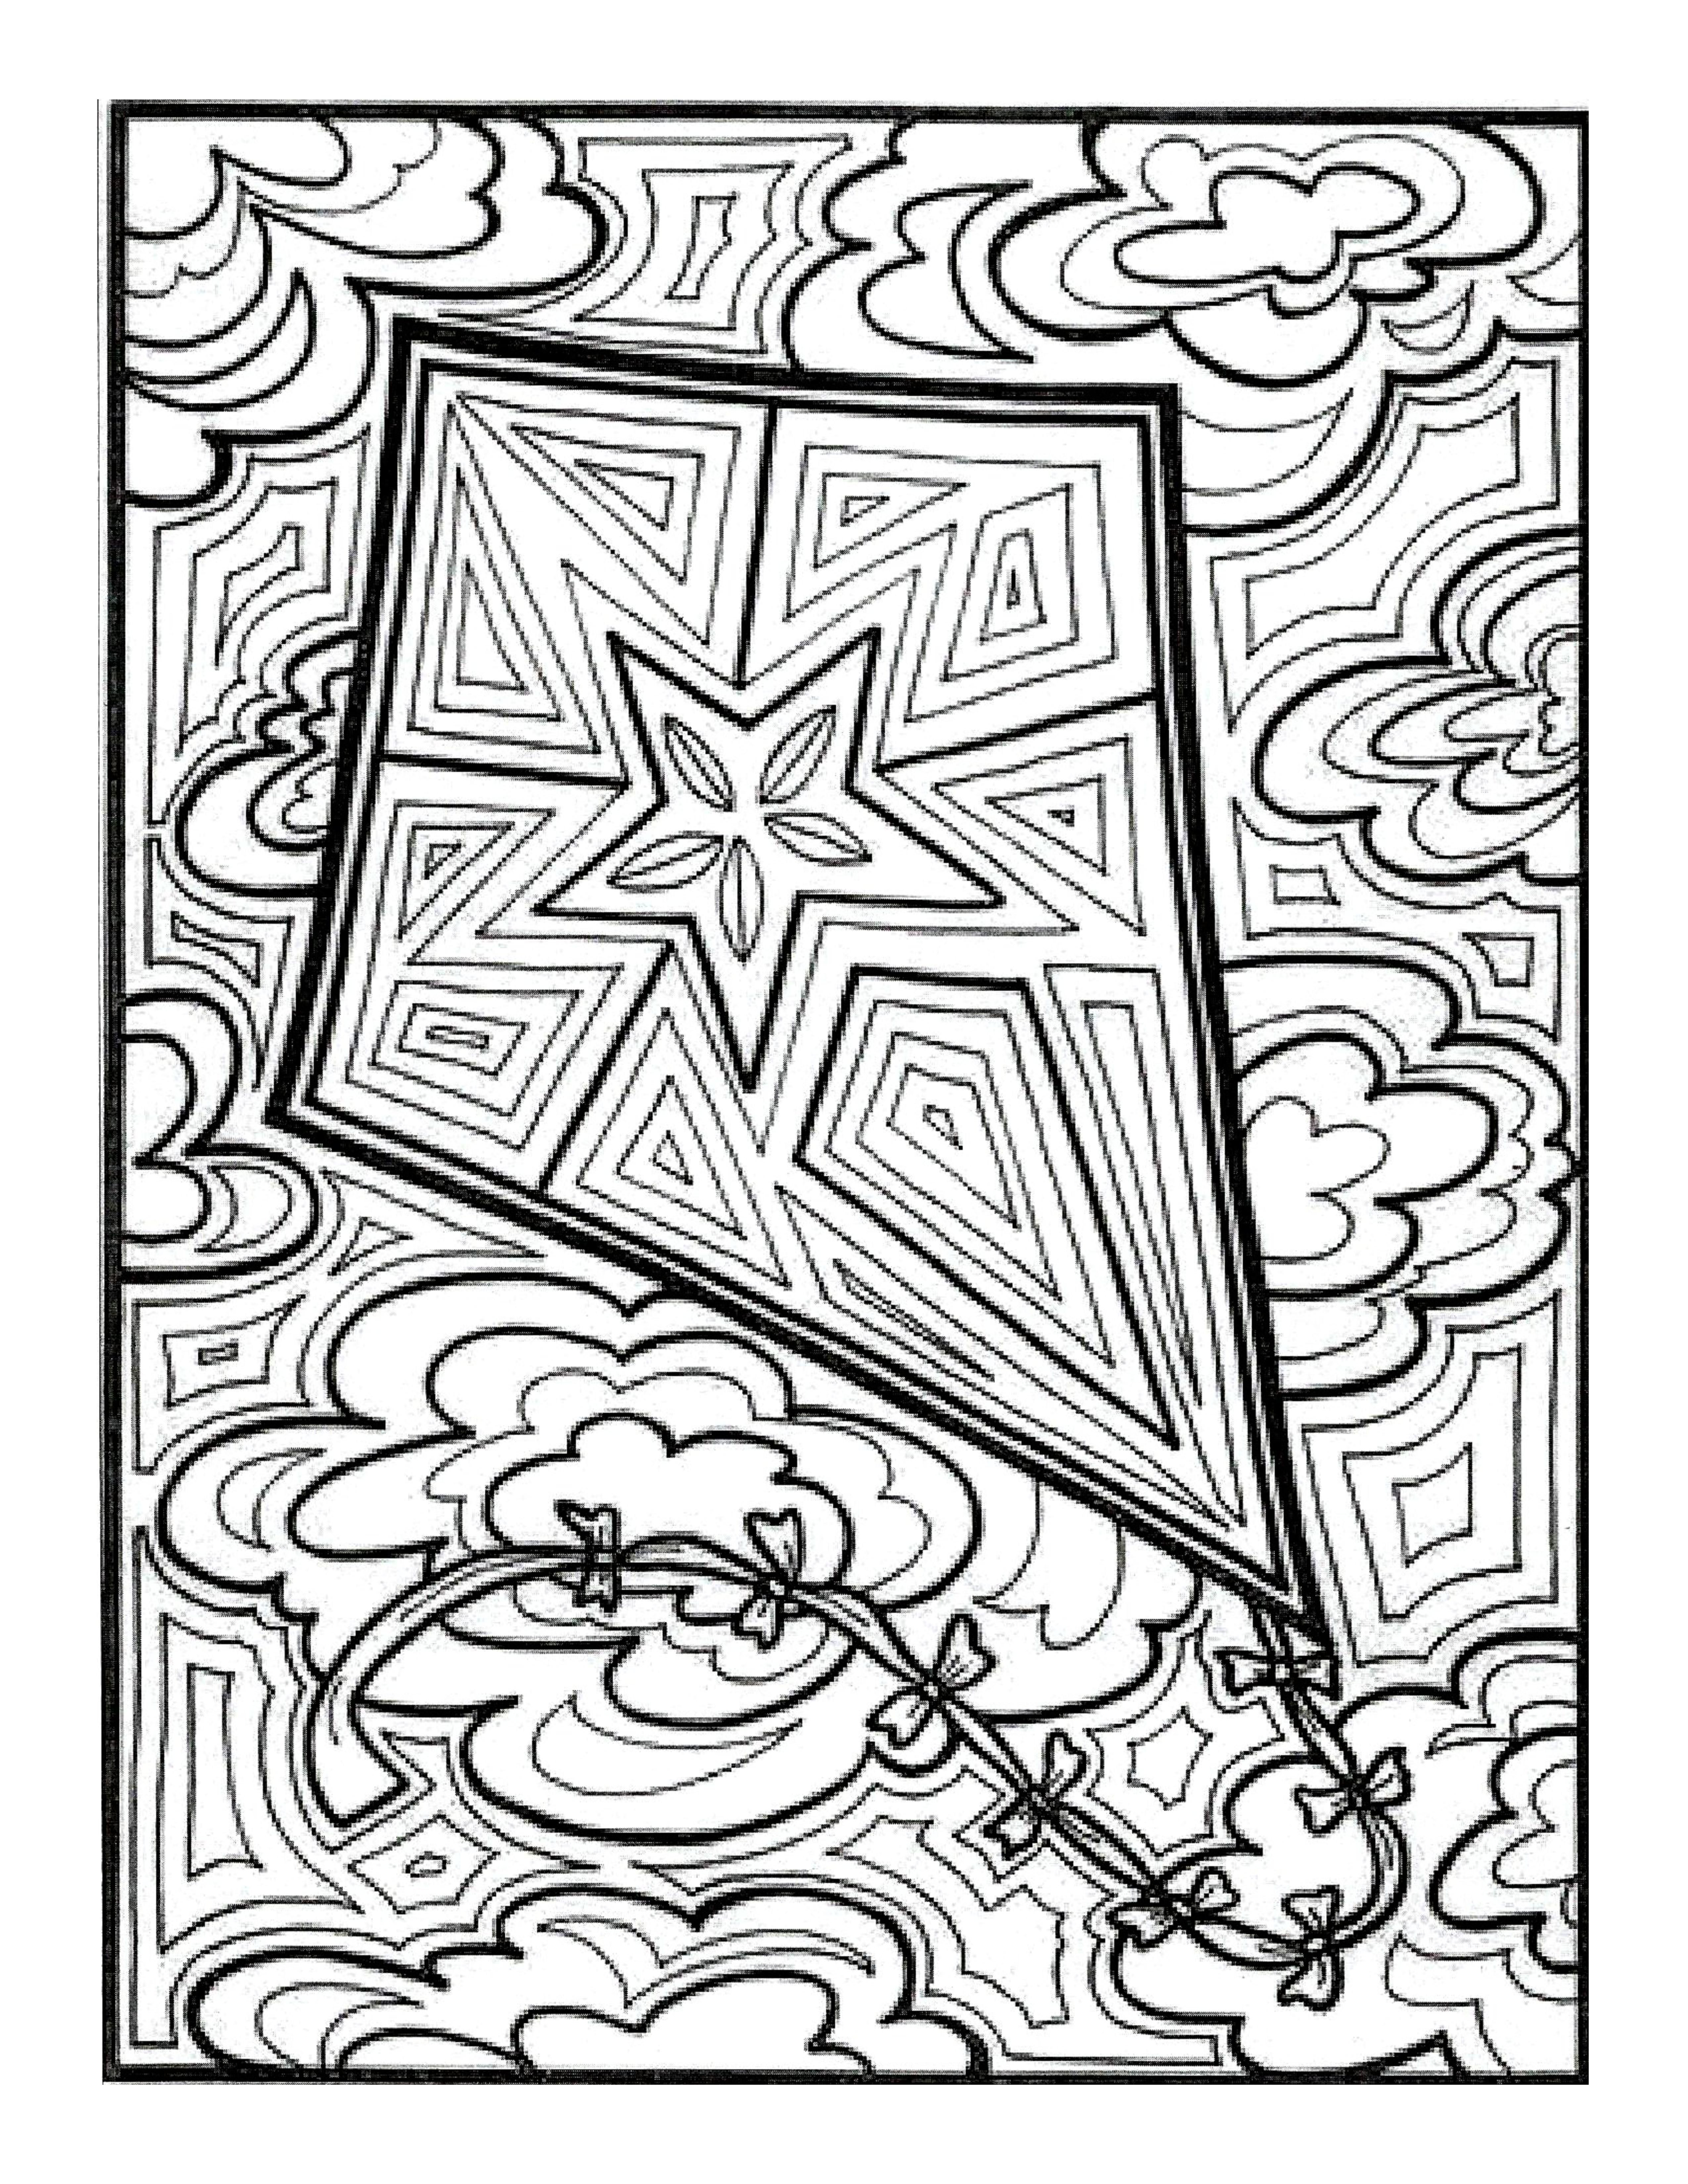 Pin von William Groeneveld auf LET\'S DOODLE Coloring Pages! | Pinterest